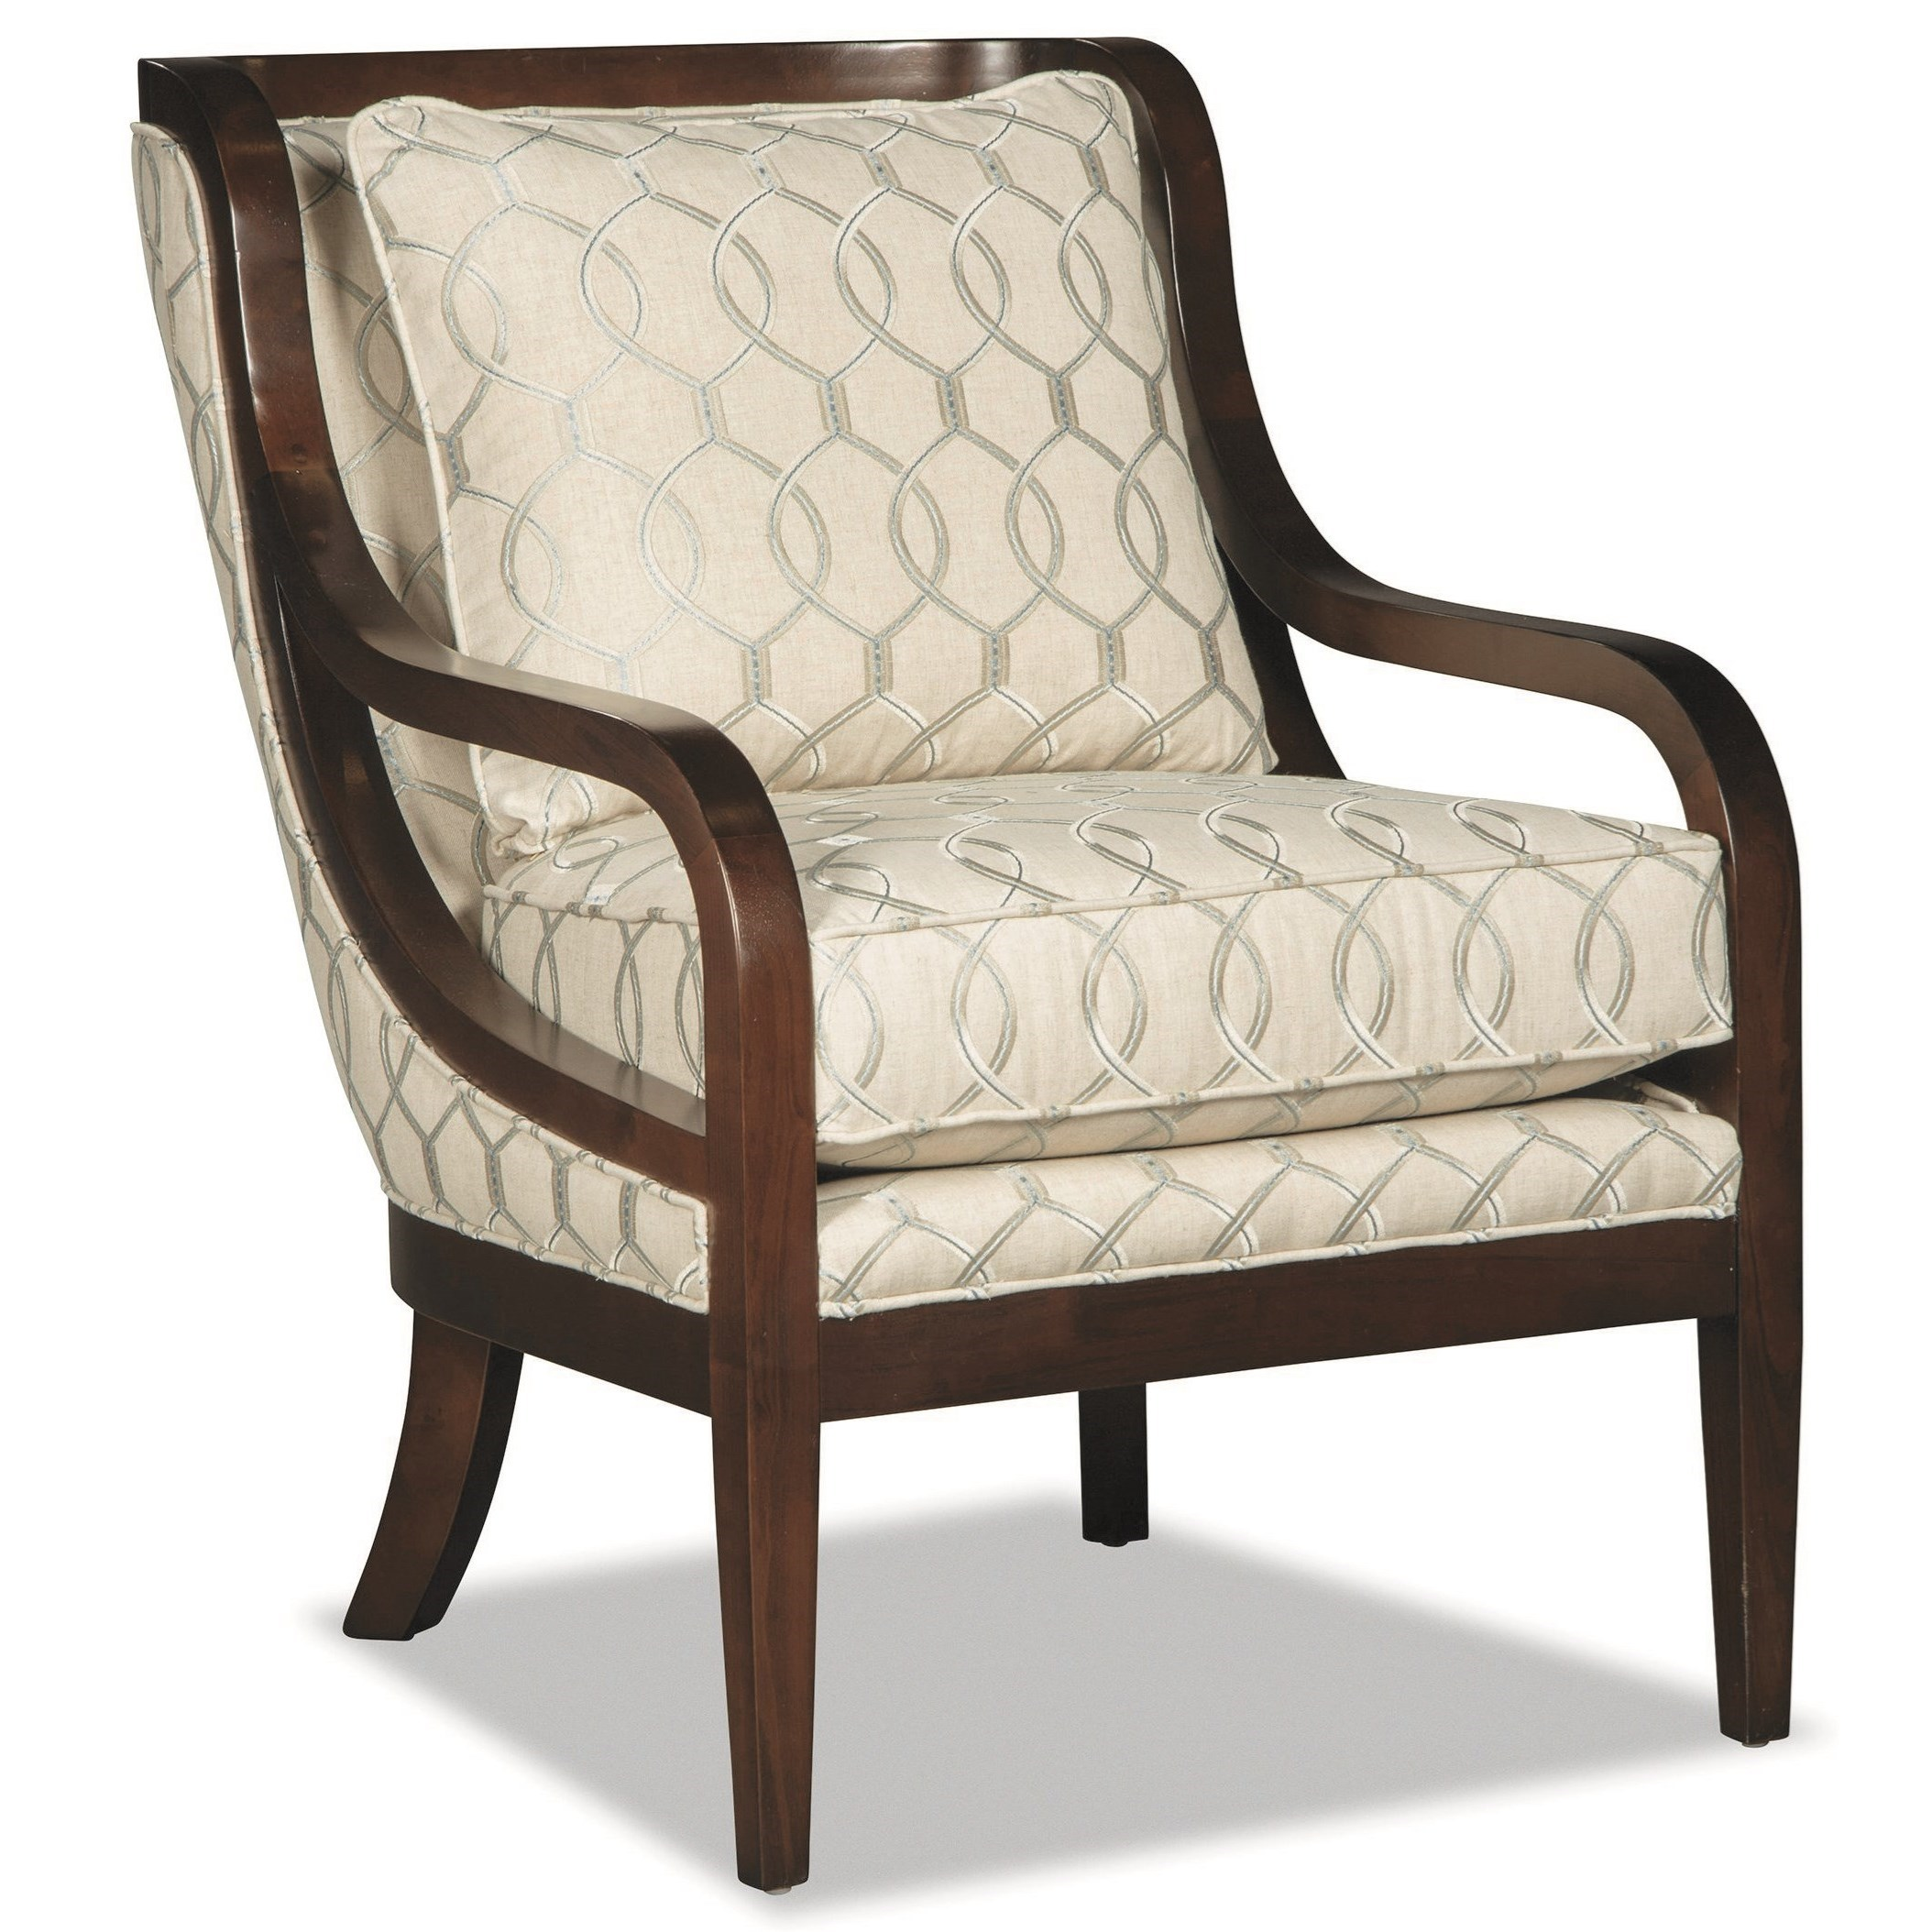 Wood Accent Chair Craftmaster 067410 067510 Accent Chair With Exposed Wood